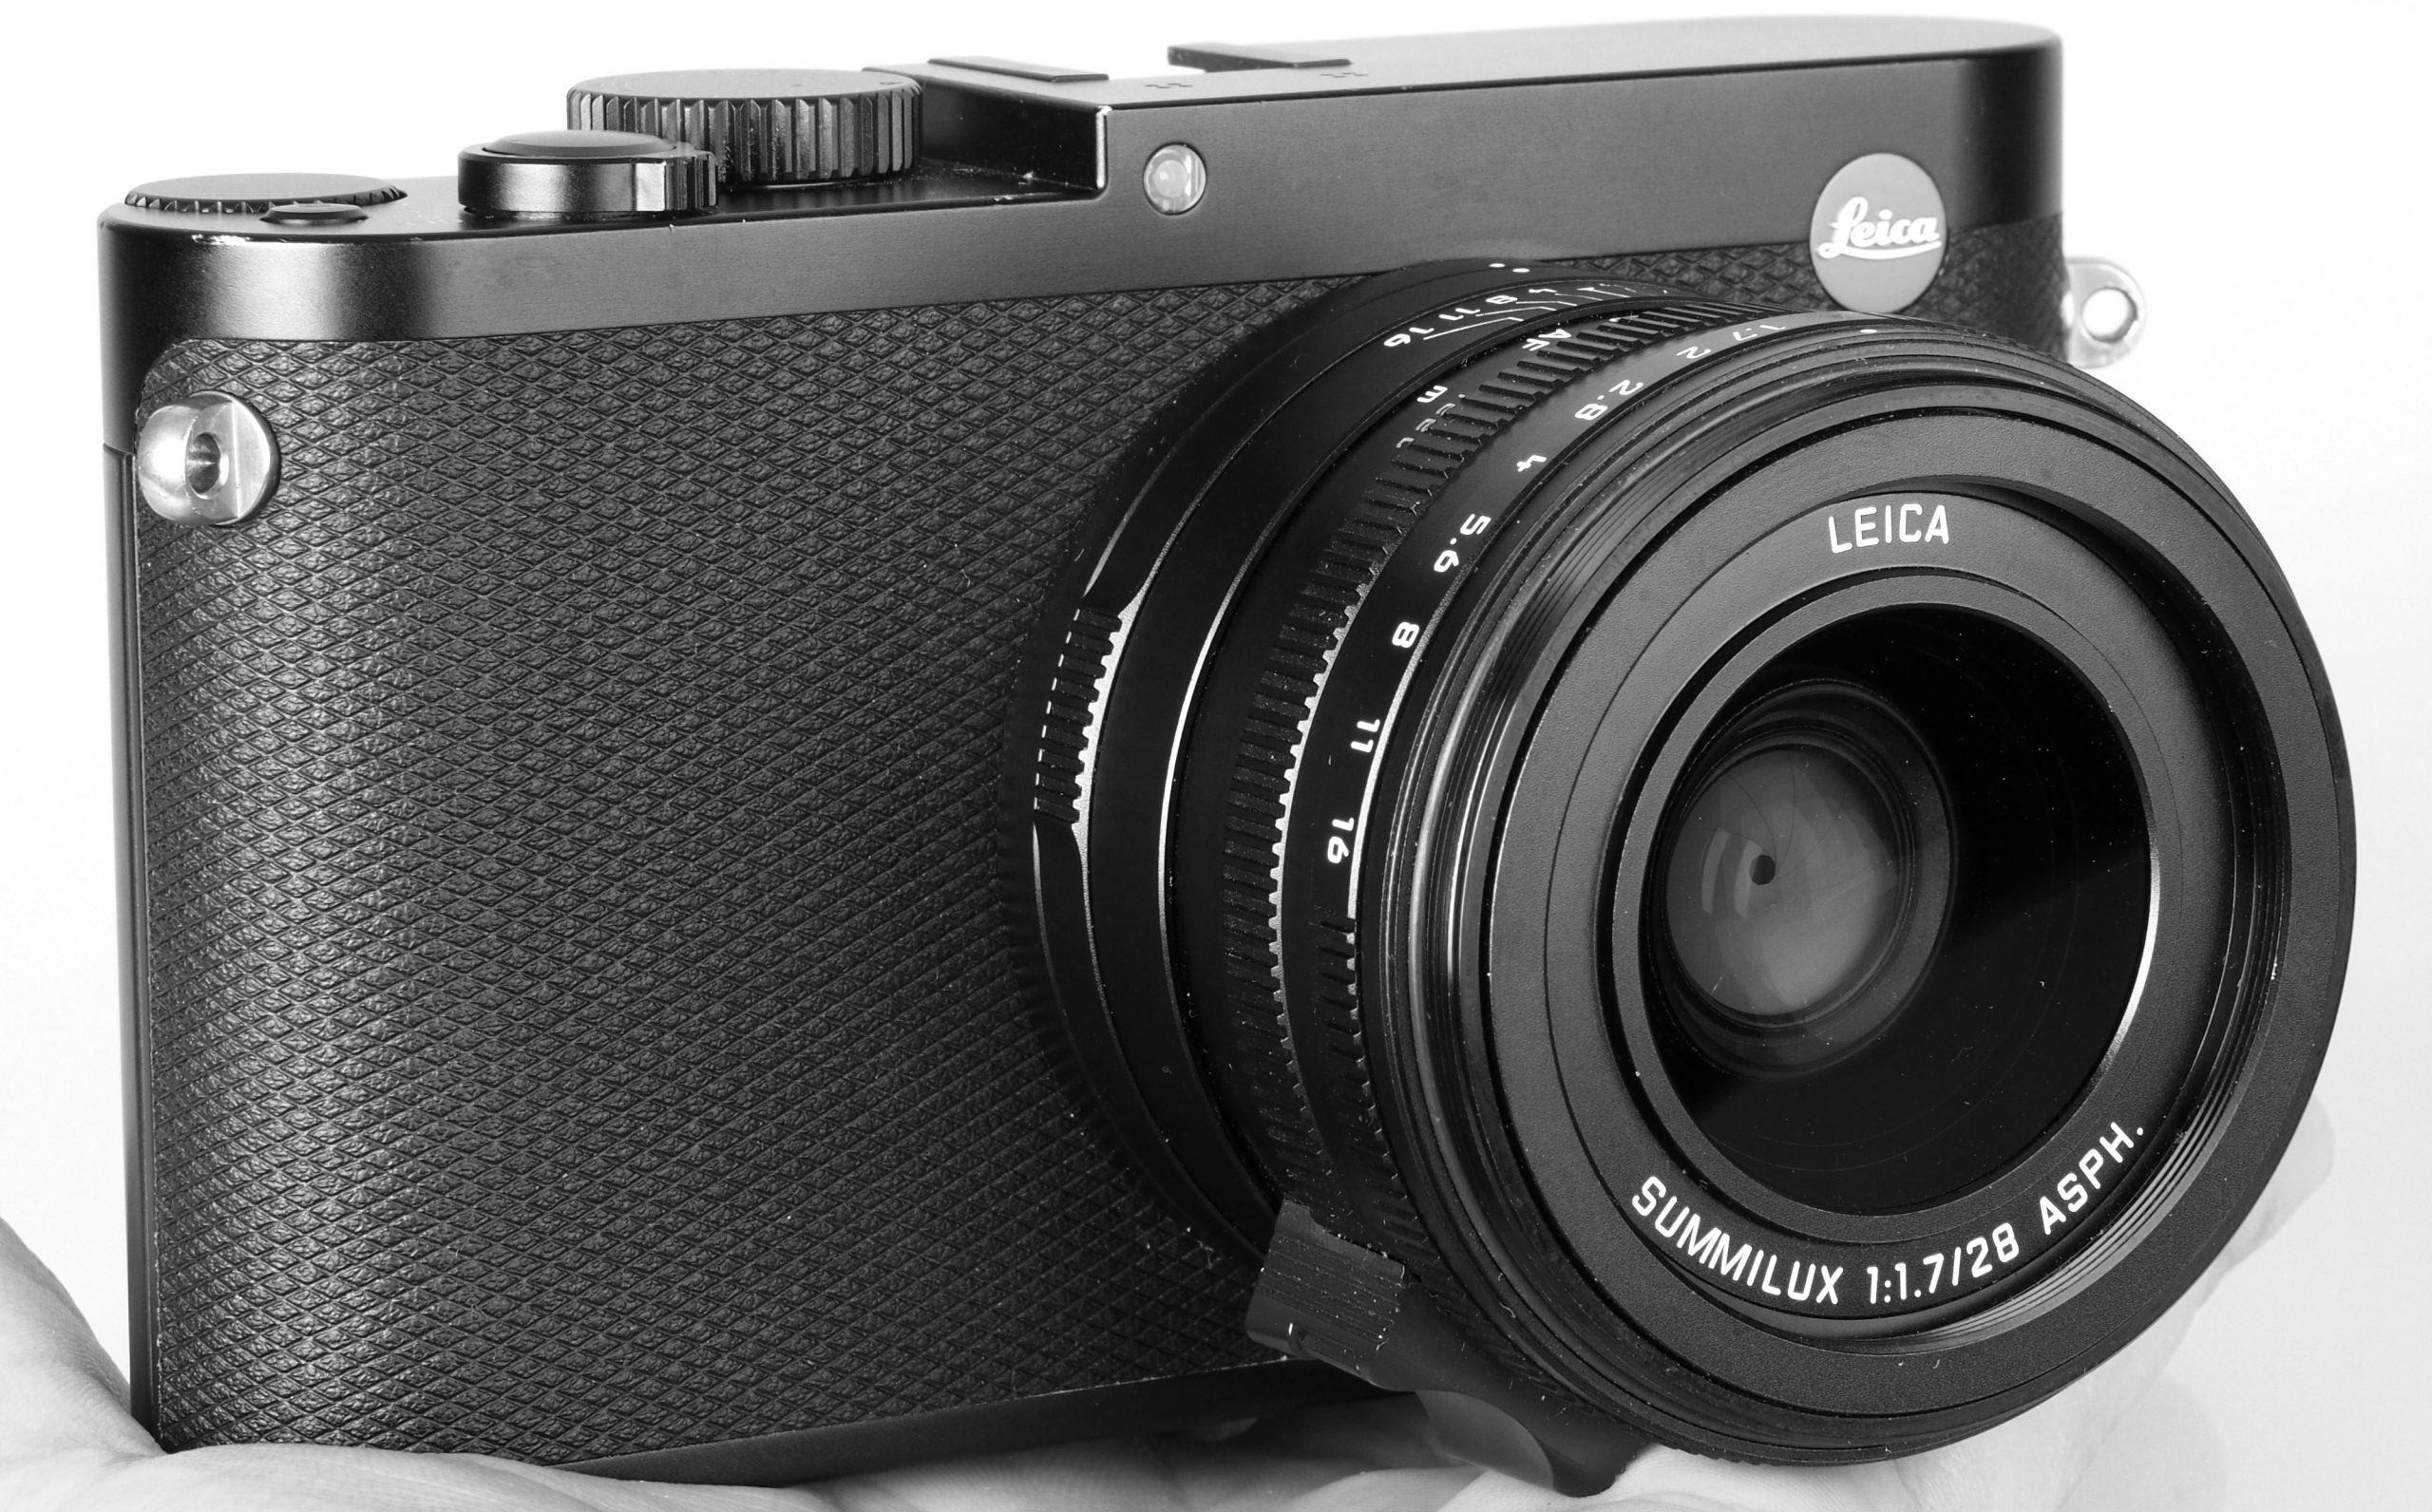 Leica Q Camera Review by Master Photographer Oz Yilmaz explains how to take better photographs with Leica Q camera with photography tips, tutorials, secrets